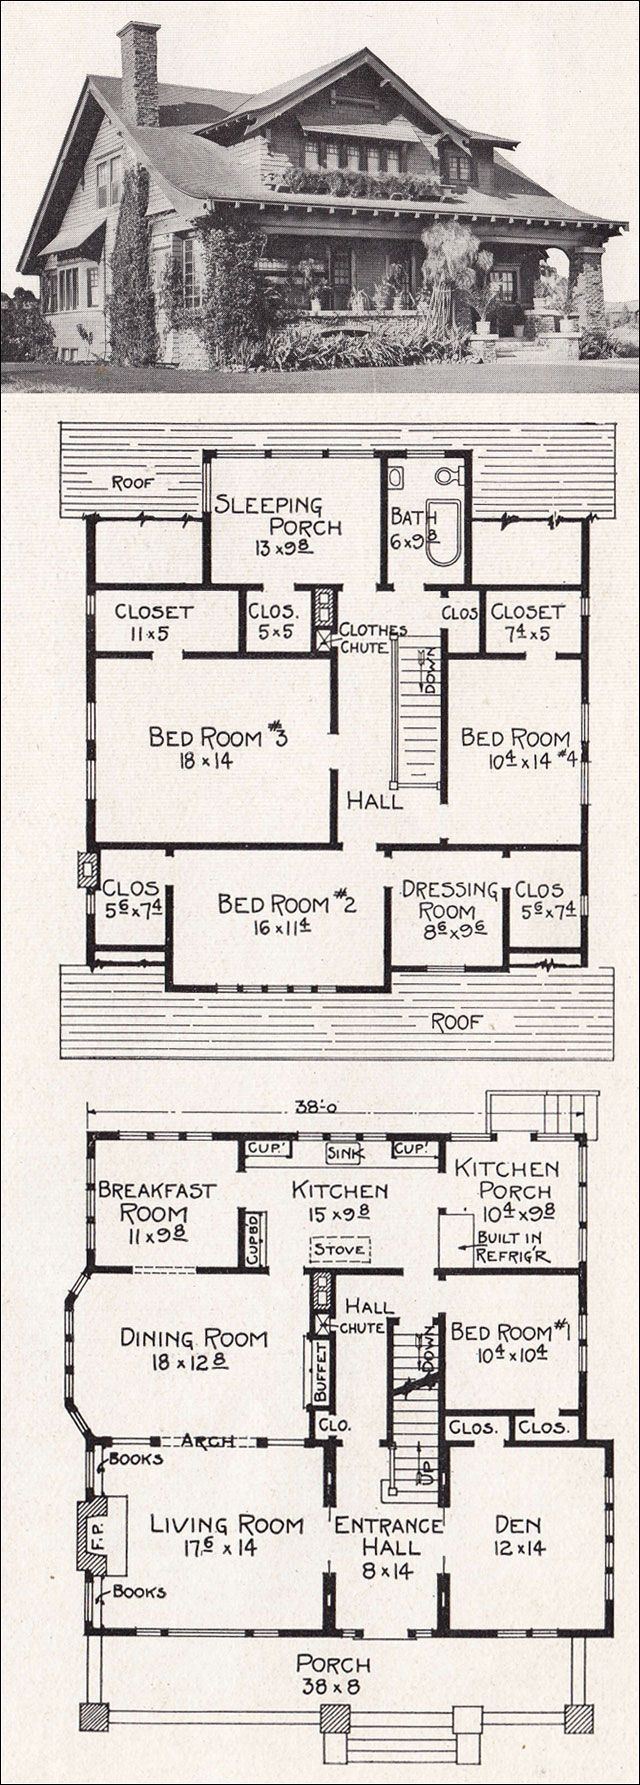 Vintage house plan that can easily be conformed to our modern day life style. I'm in love with the exterior! ---- my original pin description. In the nine months I have had this plan pinned, 569 people have pinned this plan and 61 people have liked it as of 1/25/16. I have yet to see one person reword my description, so I guess we are all in love with the exterior. :) Happy pinning!